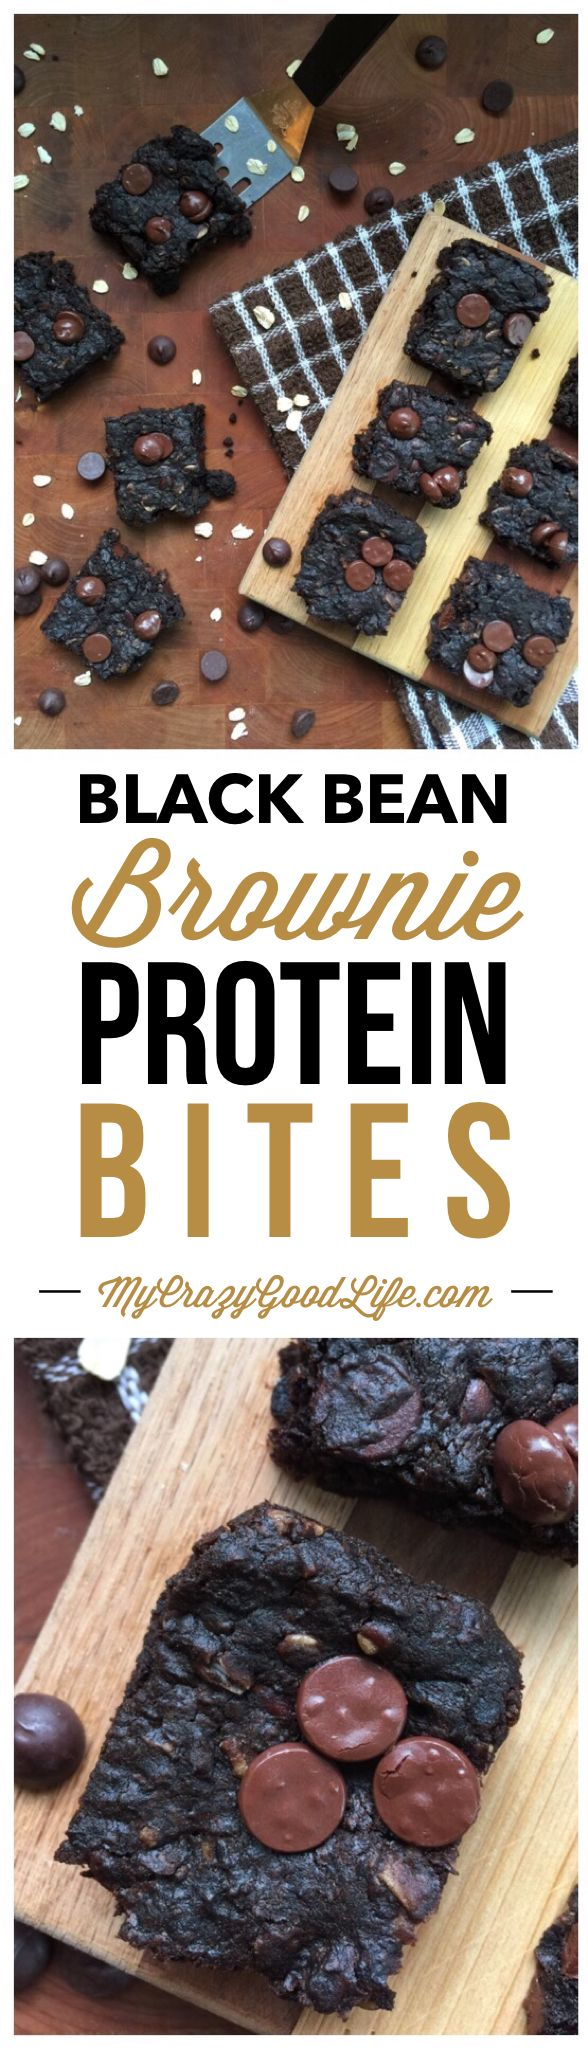 These black bean brownie protein bites are the perfect after workout snack! The protein in the beans helps repair your muscles, and the small brownie bite is the something sweet that you crave. There is no added sugar or flour in this recipe.